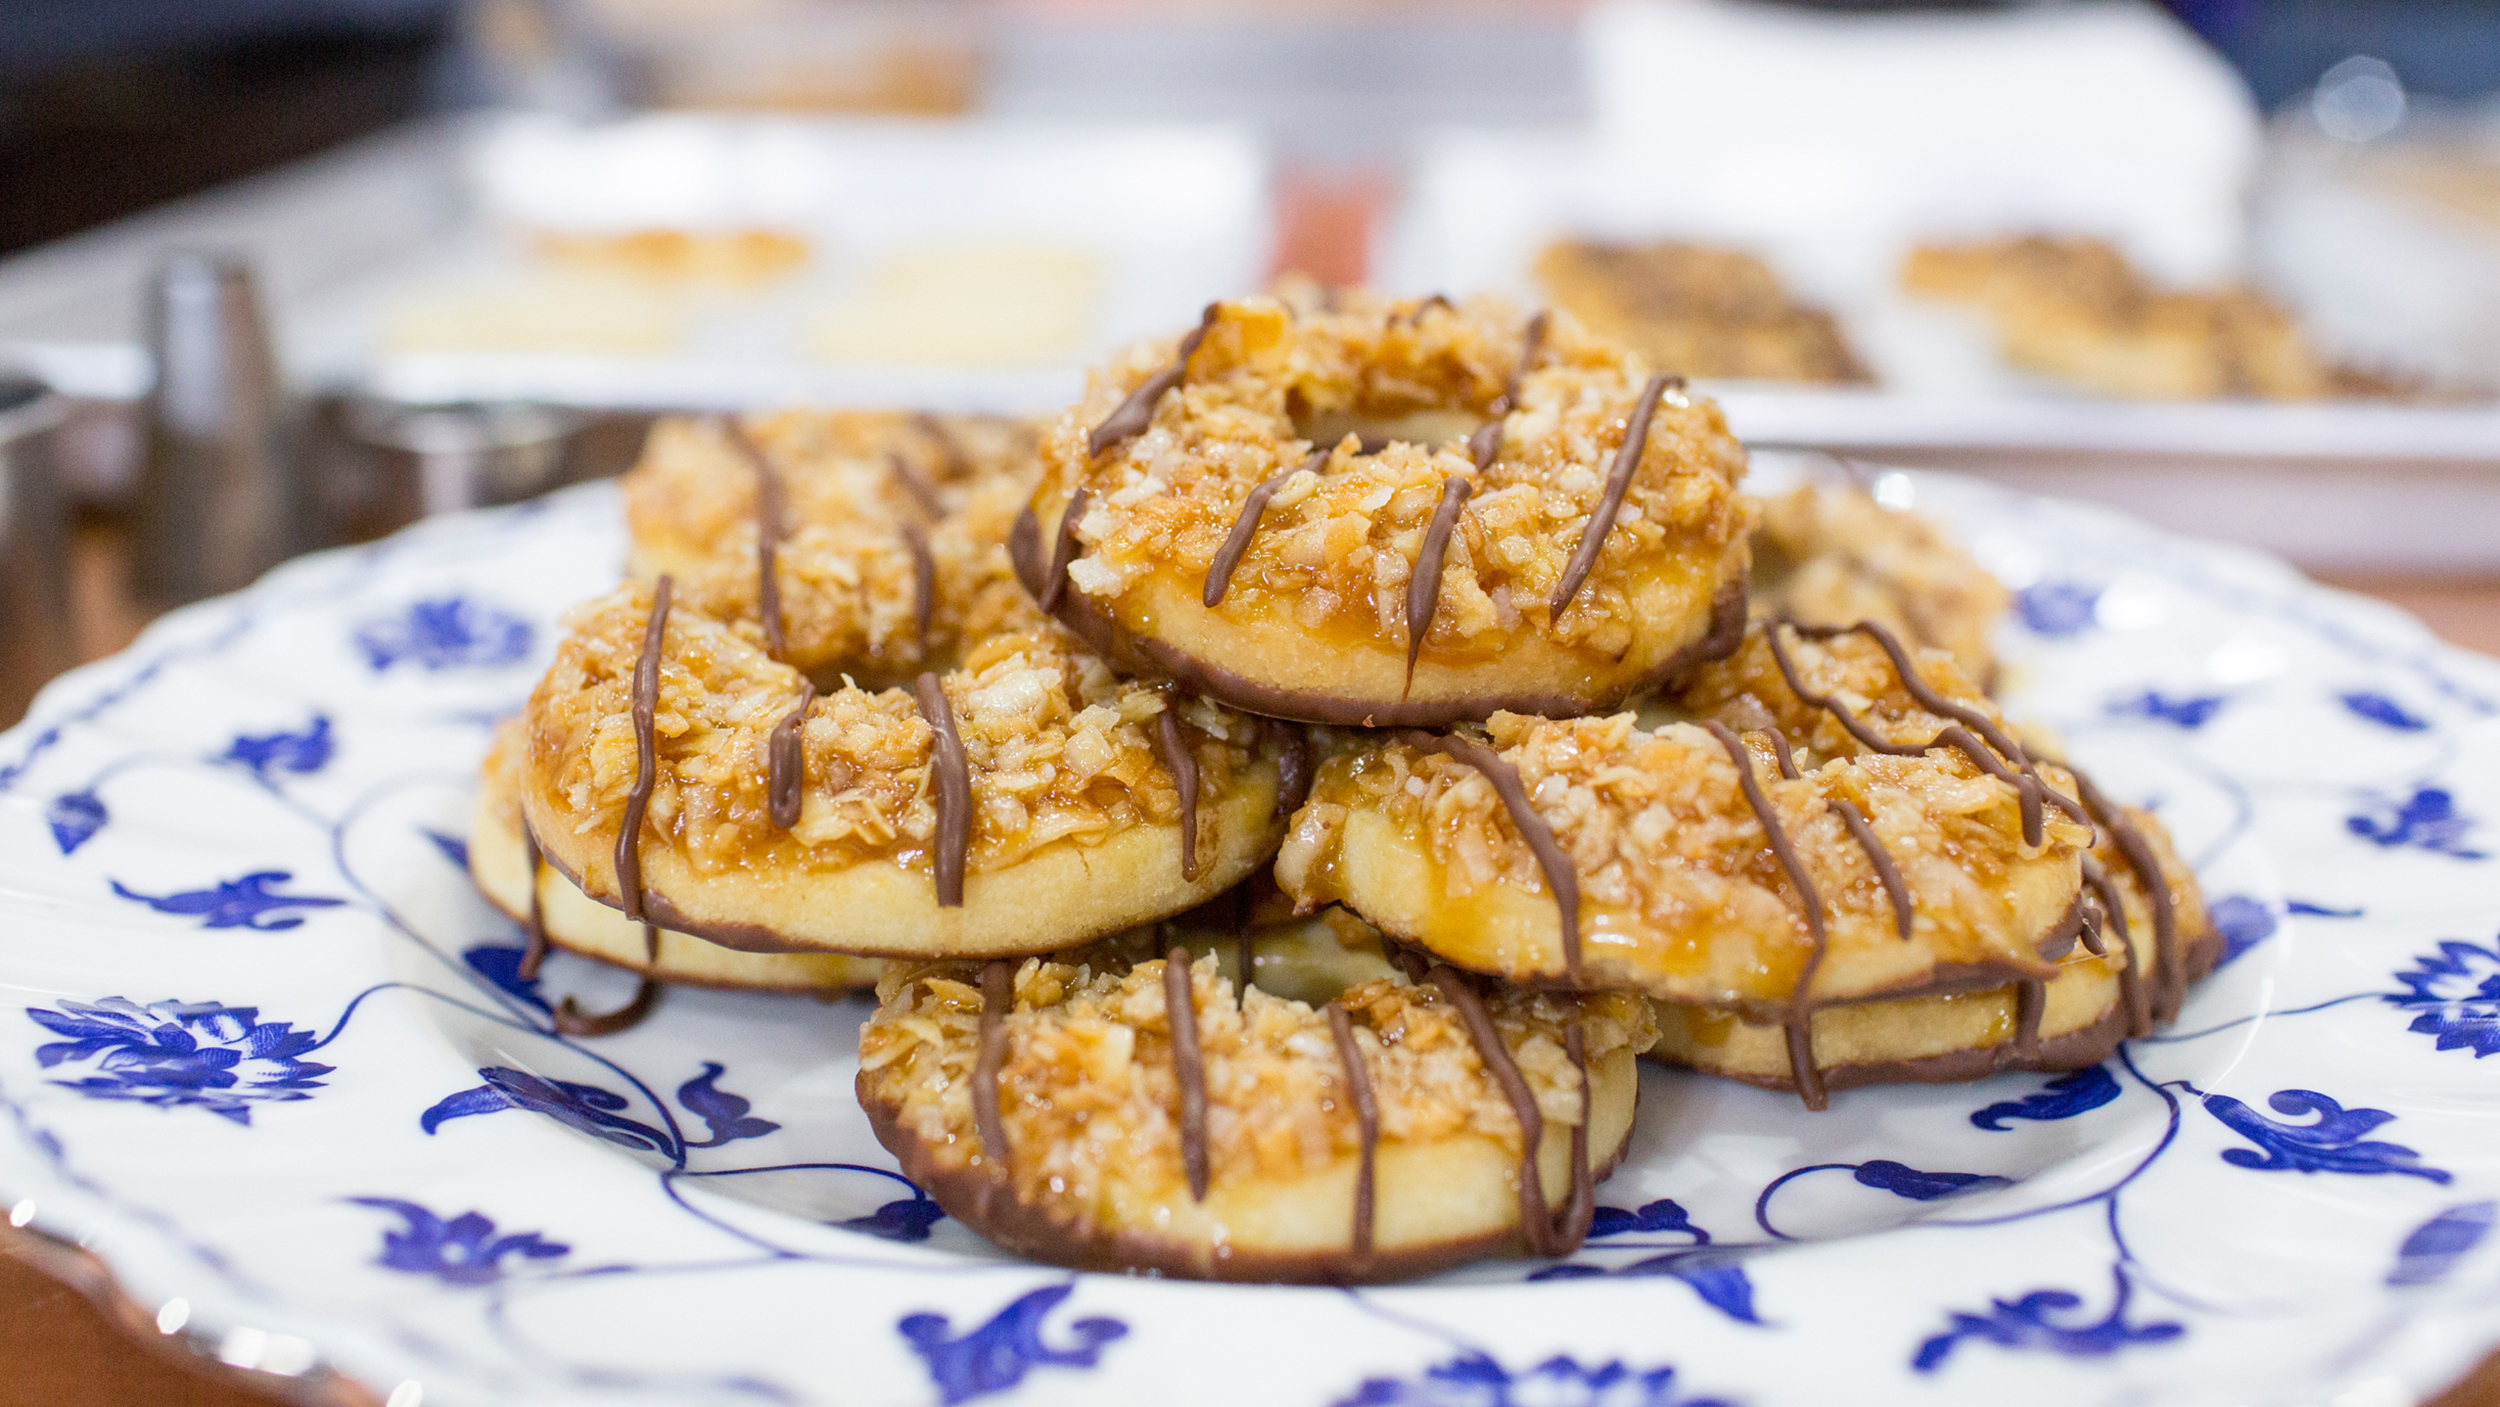 How to make Tagalongs and Samoas at home - TODAY.com